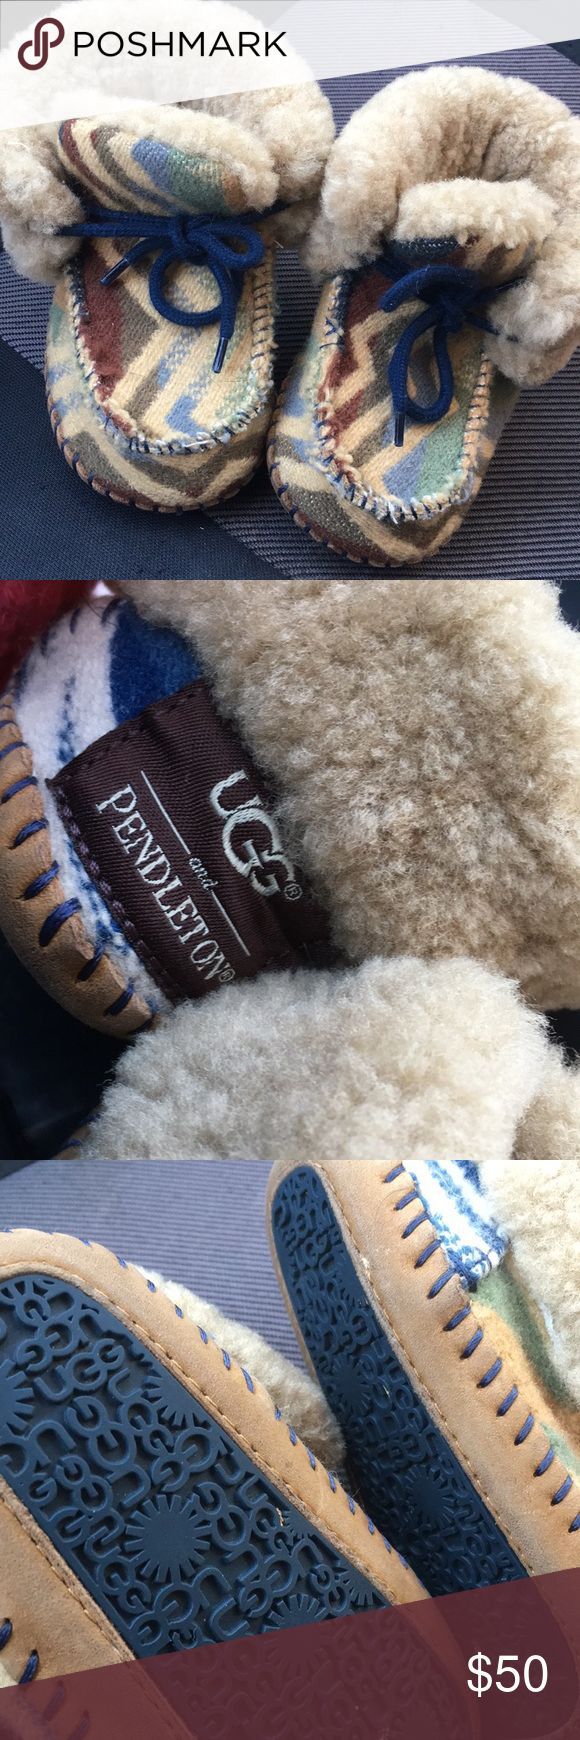 Ugg Pendleton toddlers Super cute 😘and warm 👣comfy size 4/5 in almost new condition will fit up to 24months or 2T UGG Shoes Slippers